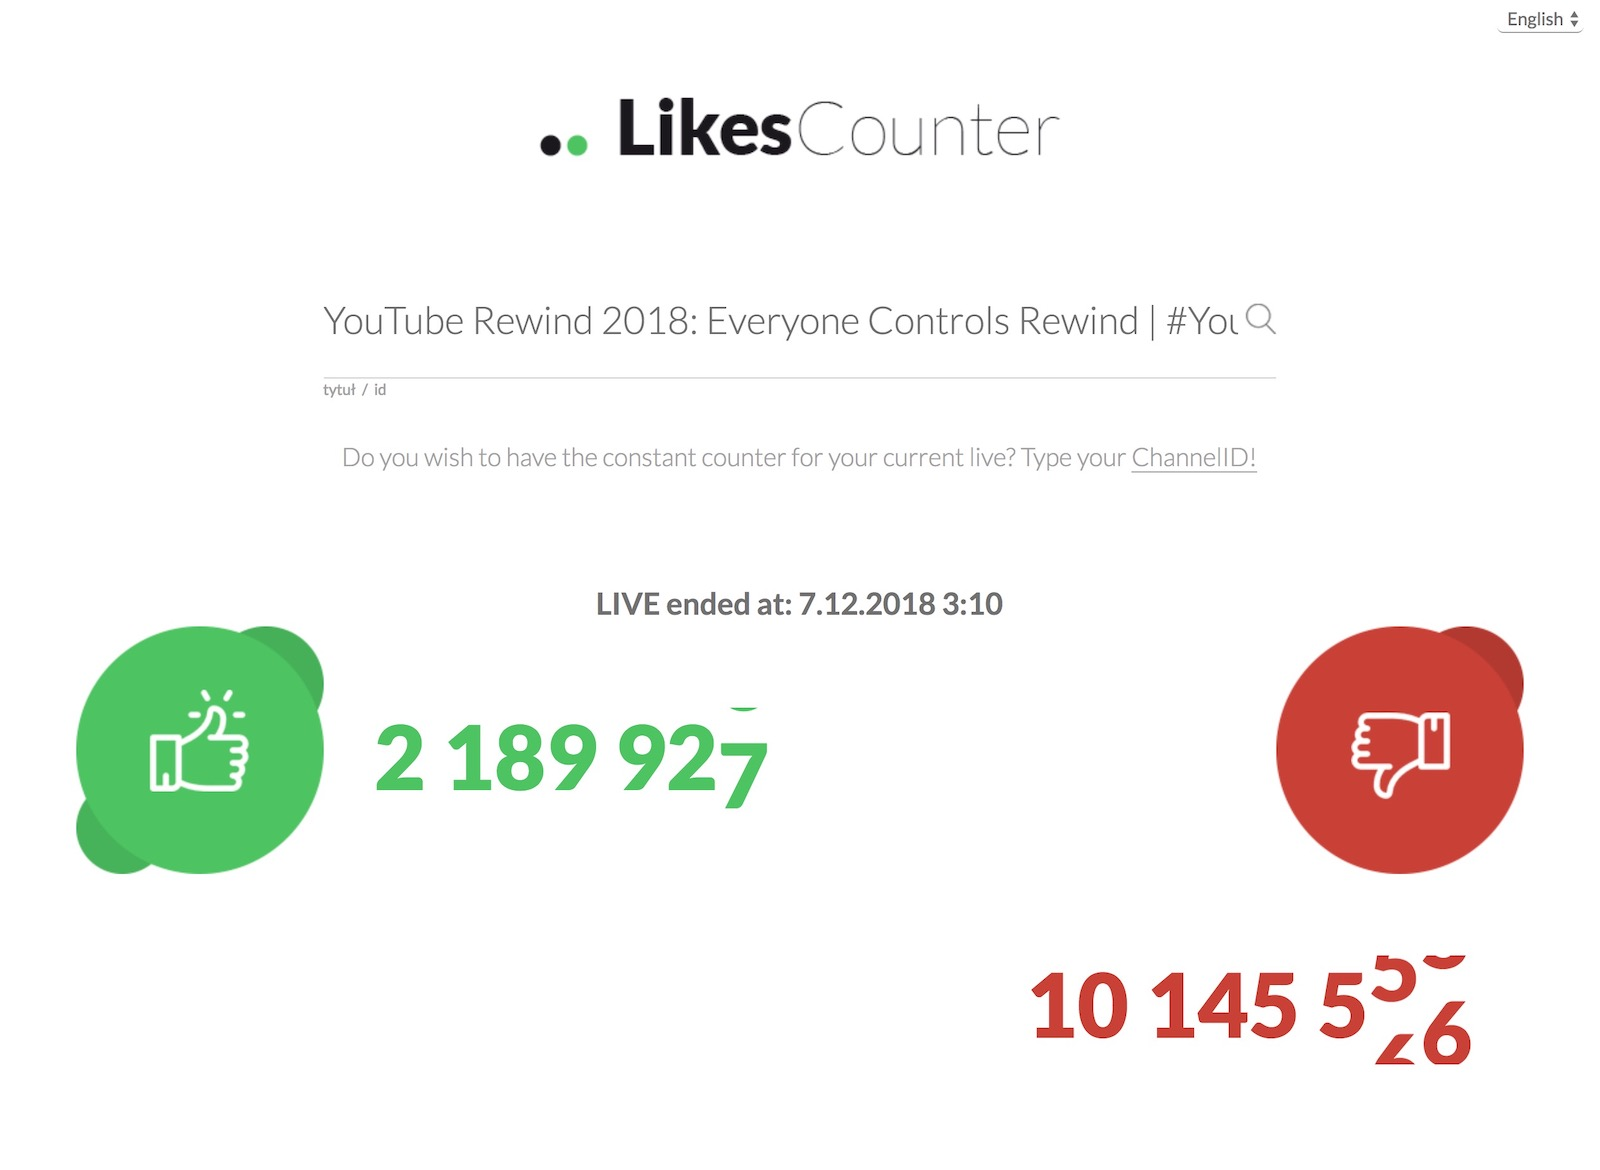 LIkes Counter